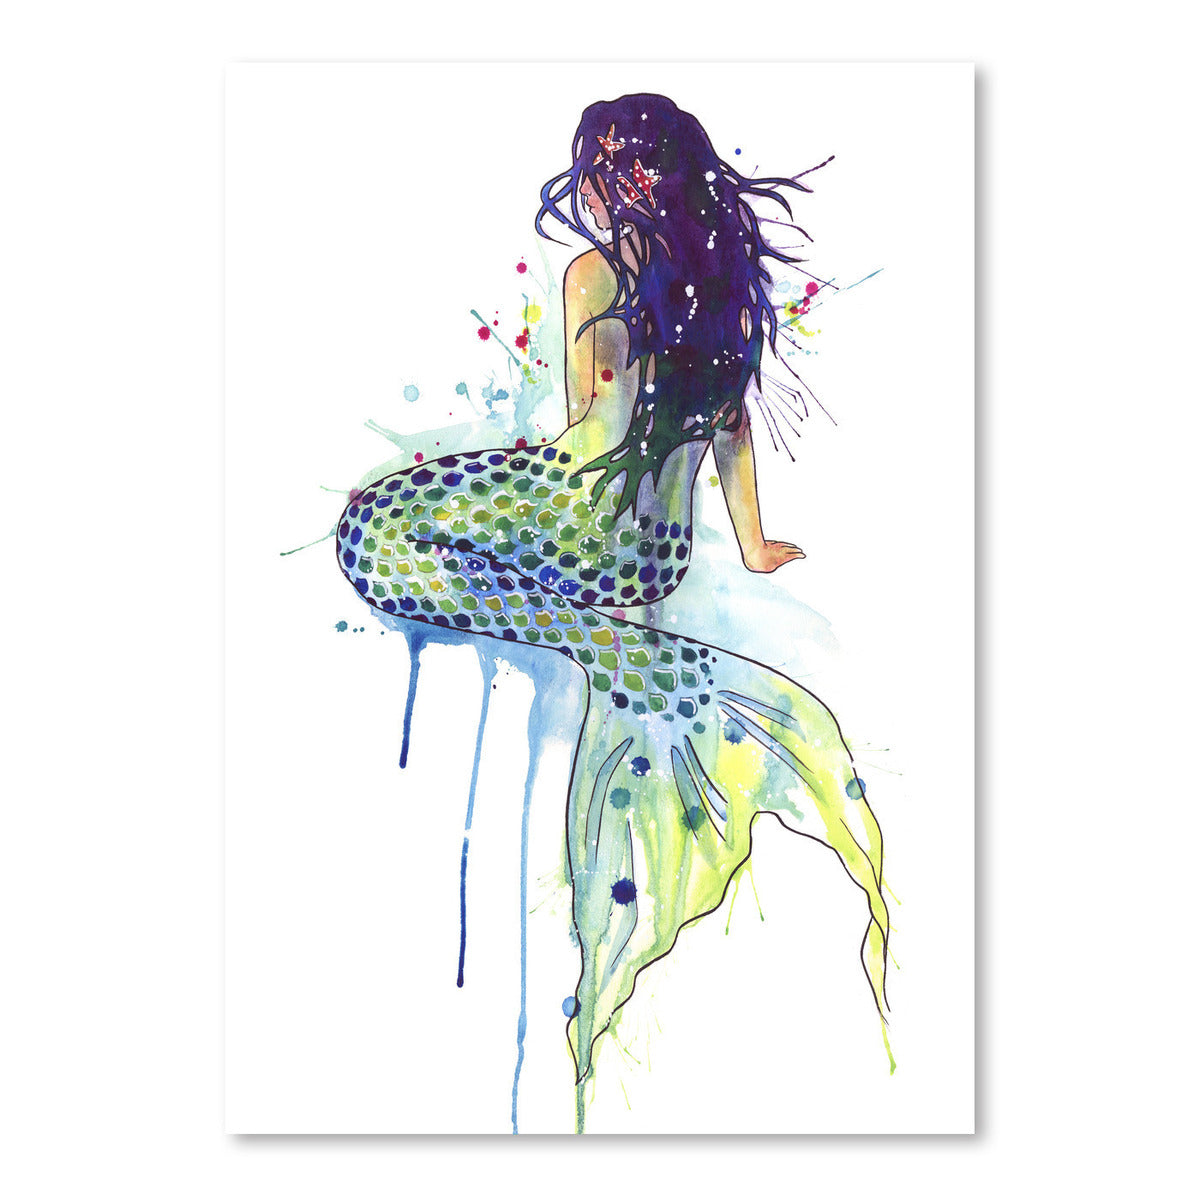 Mermaid by Sam Nagel Art Print - Art Print - Americanflat